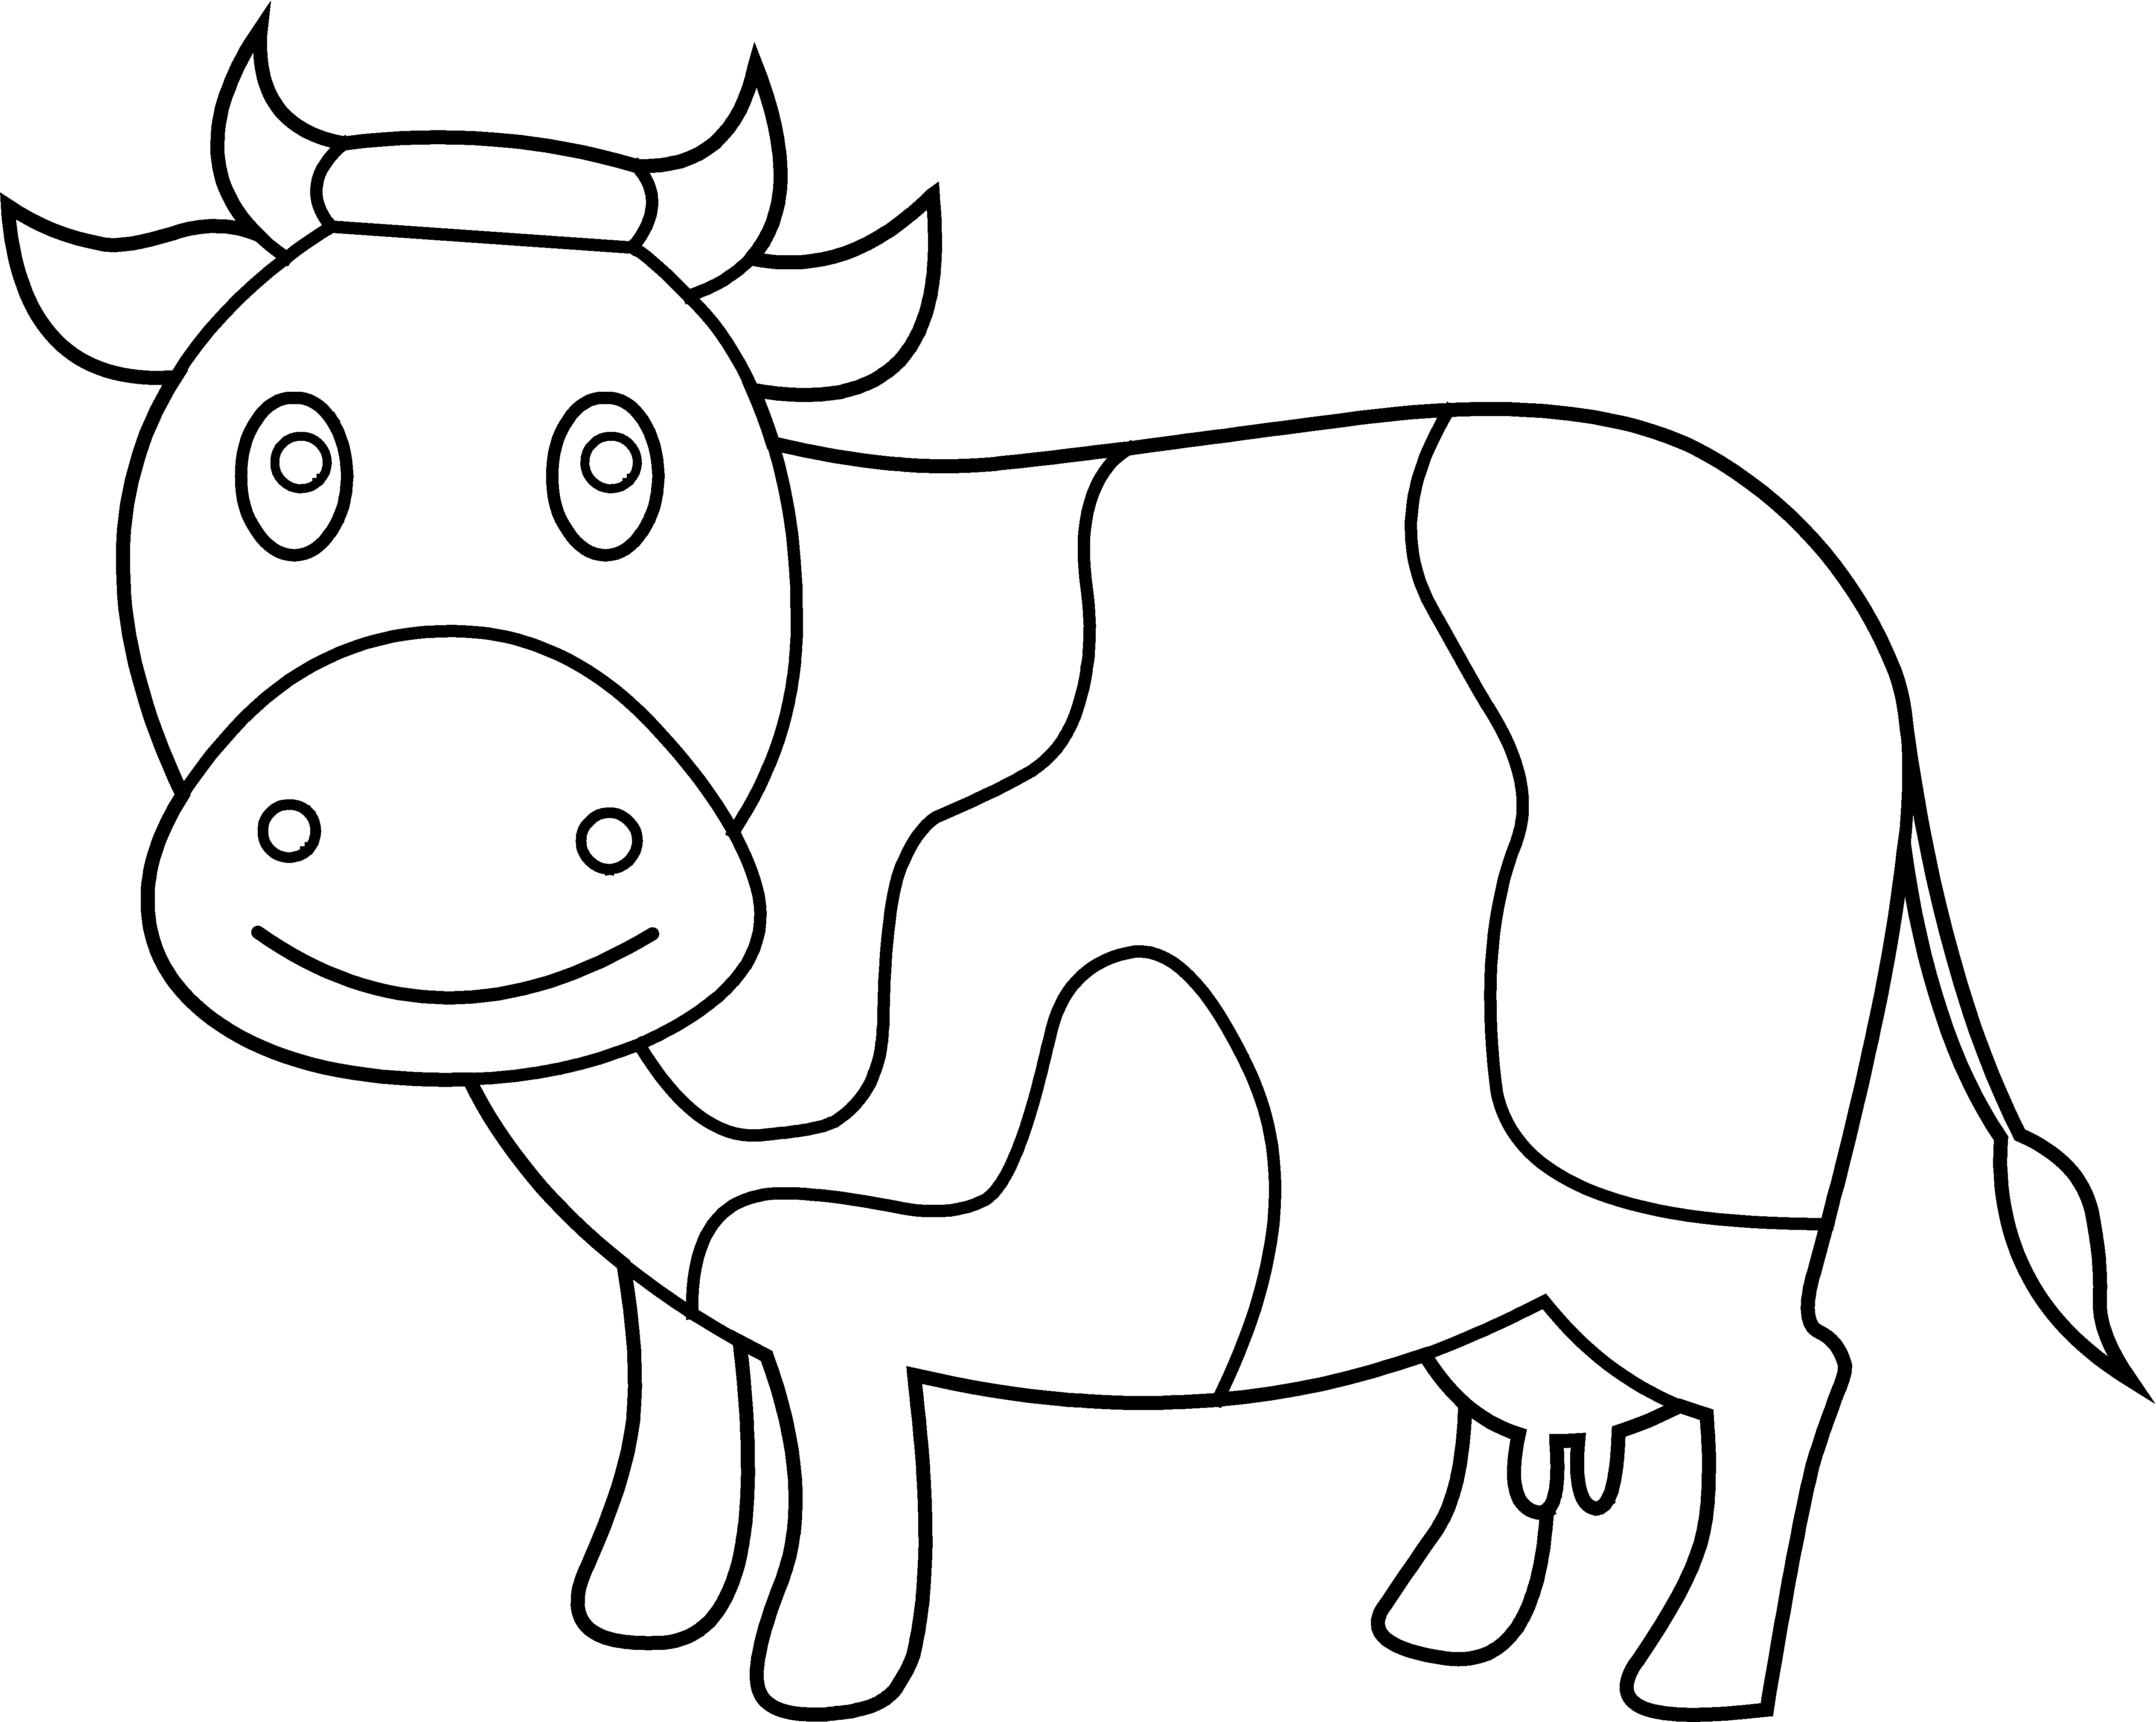 Cow coloring page free. Cows clipart cute